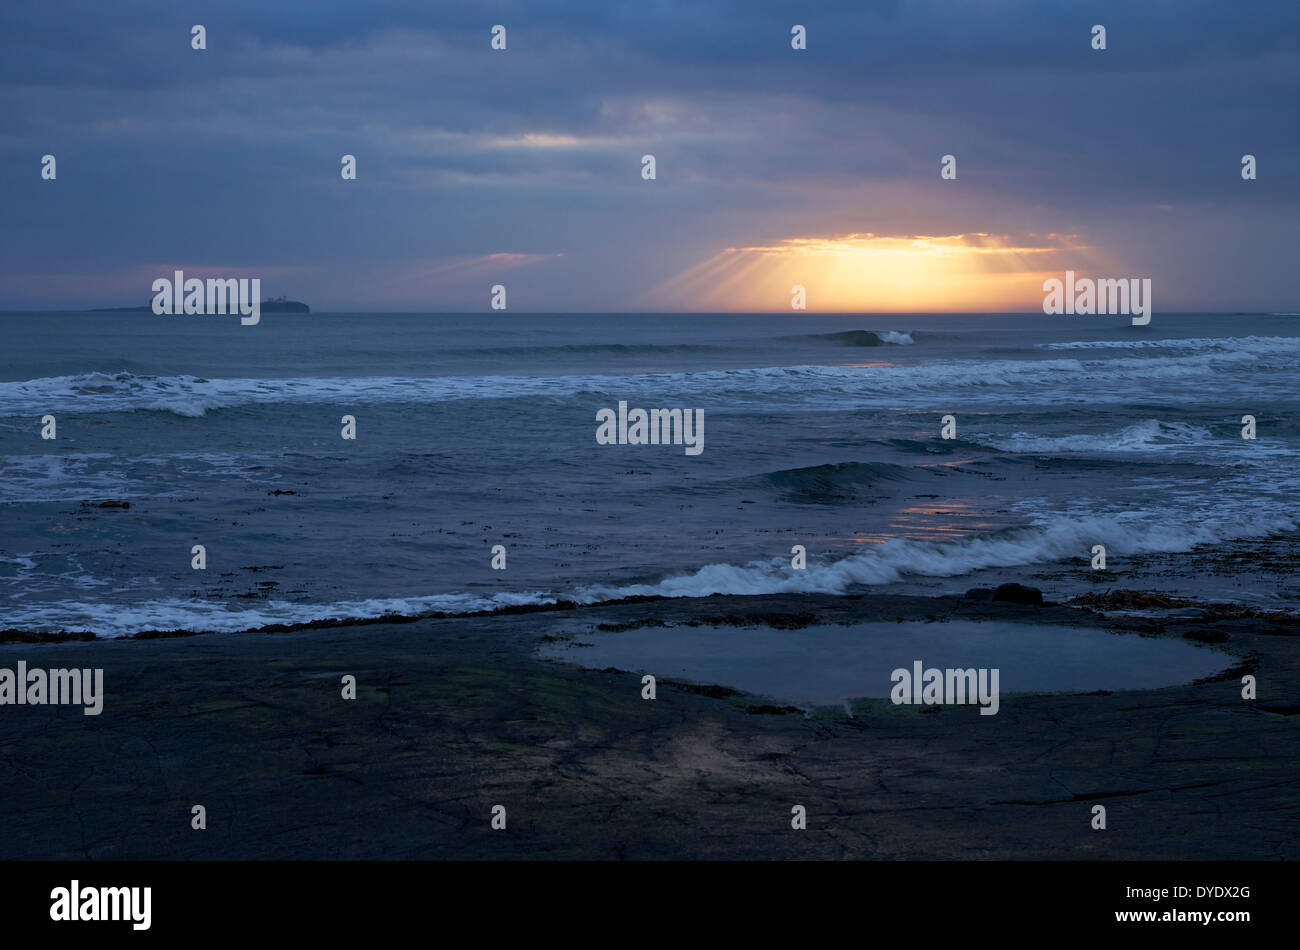 Sunrise and Farne Islands. The shape of the early sun's rays are very suggestive of godly presence. - Stock Image